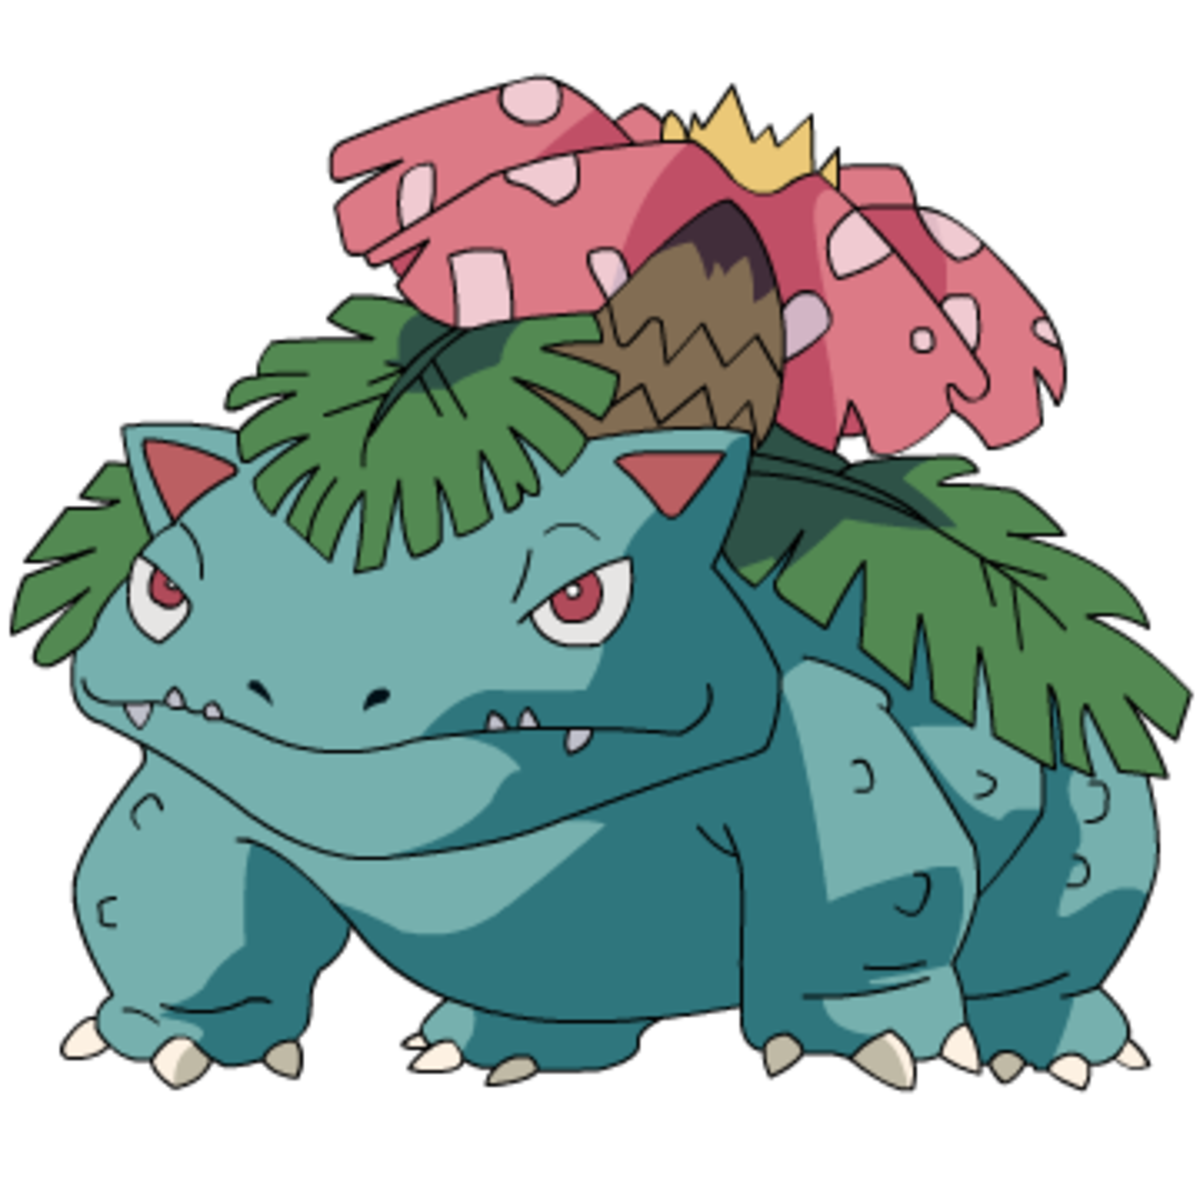 Nicknames for Venusaur